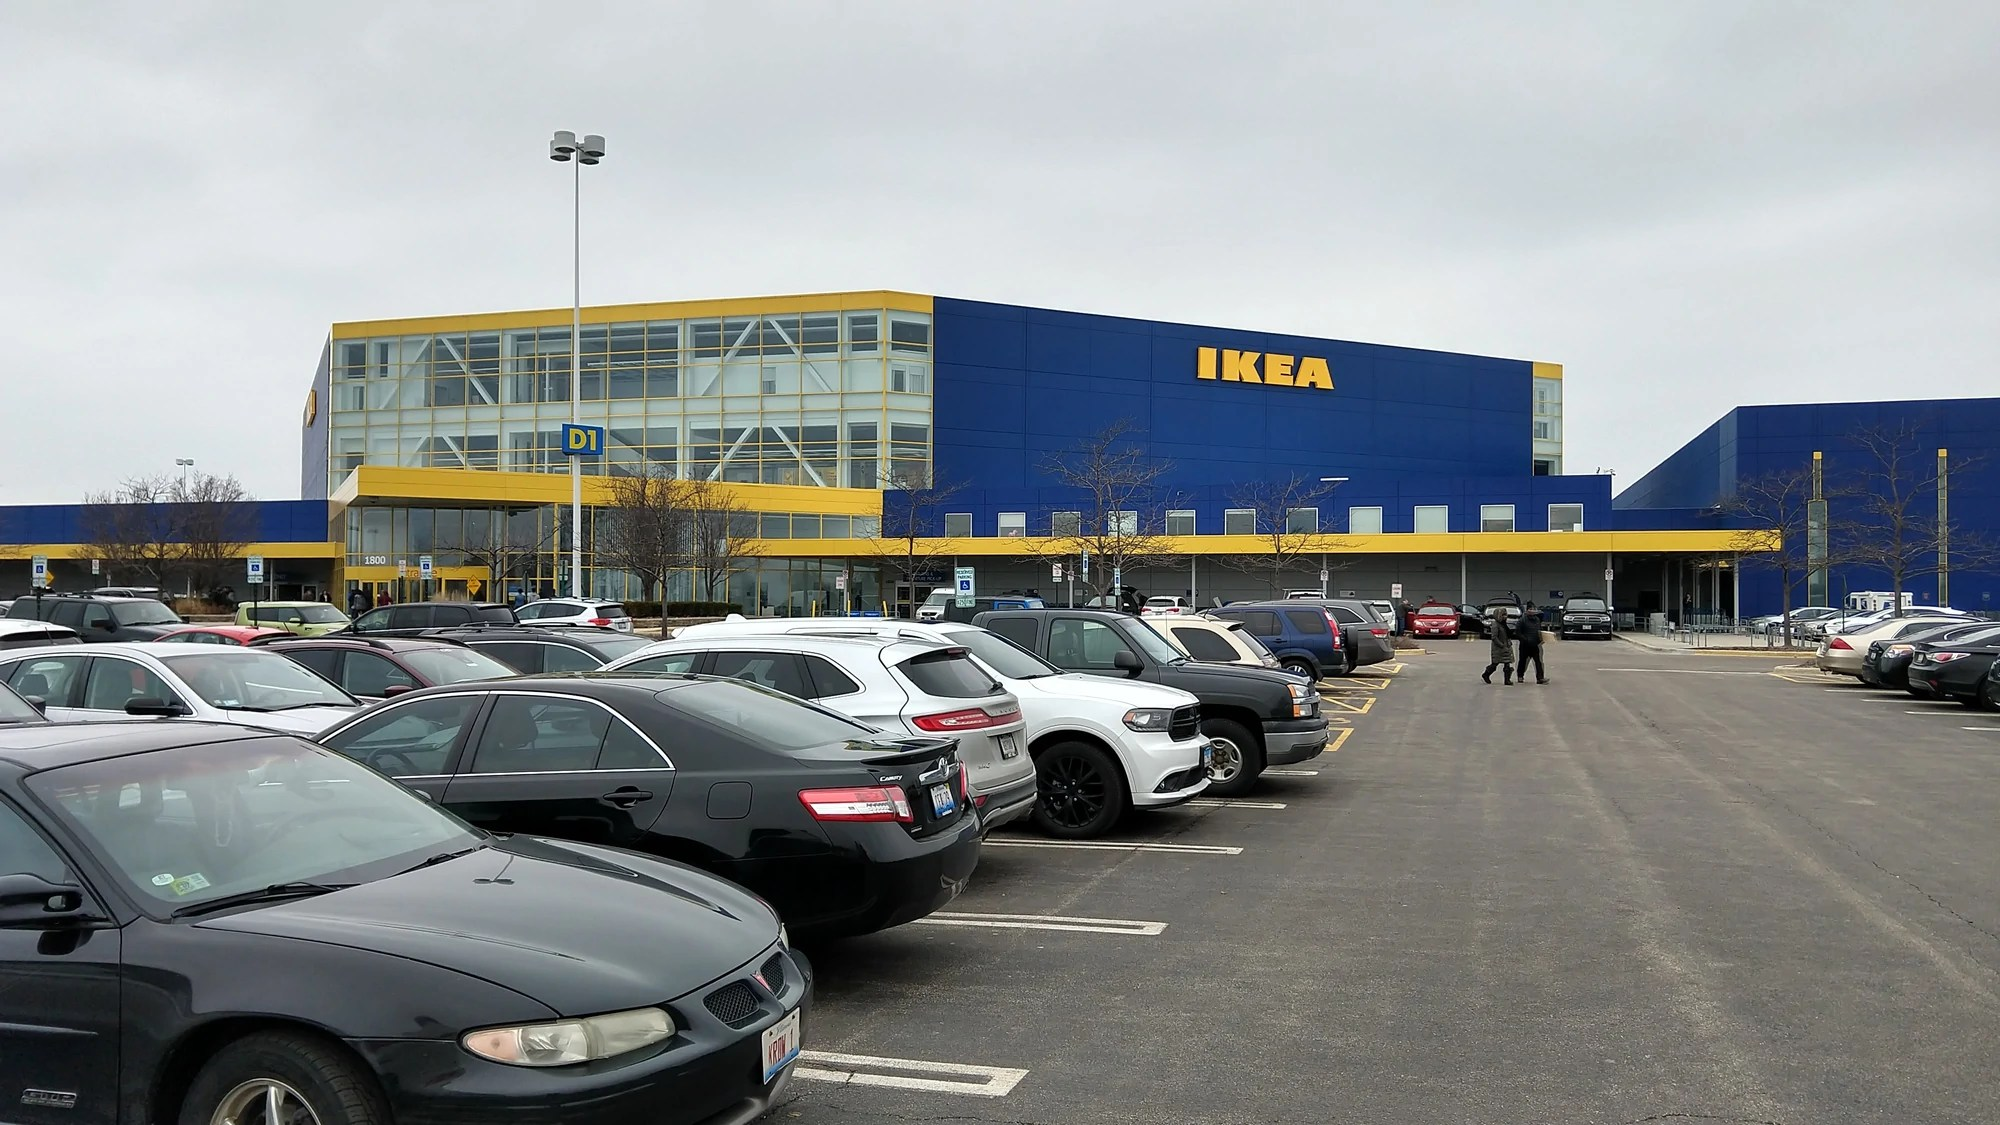 Ikea Bank Holiday Opening Times Warrington Ikea Malls And Retail Wiki Fandom Powered By Wikia